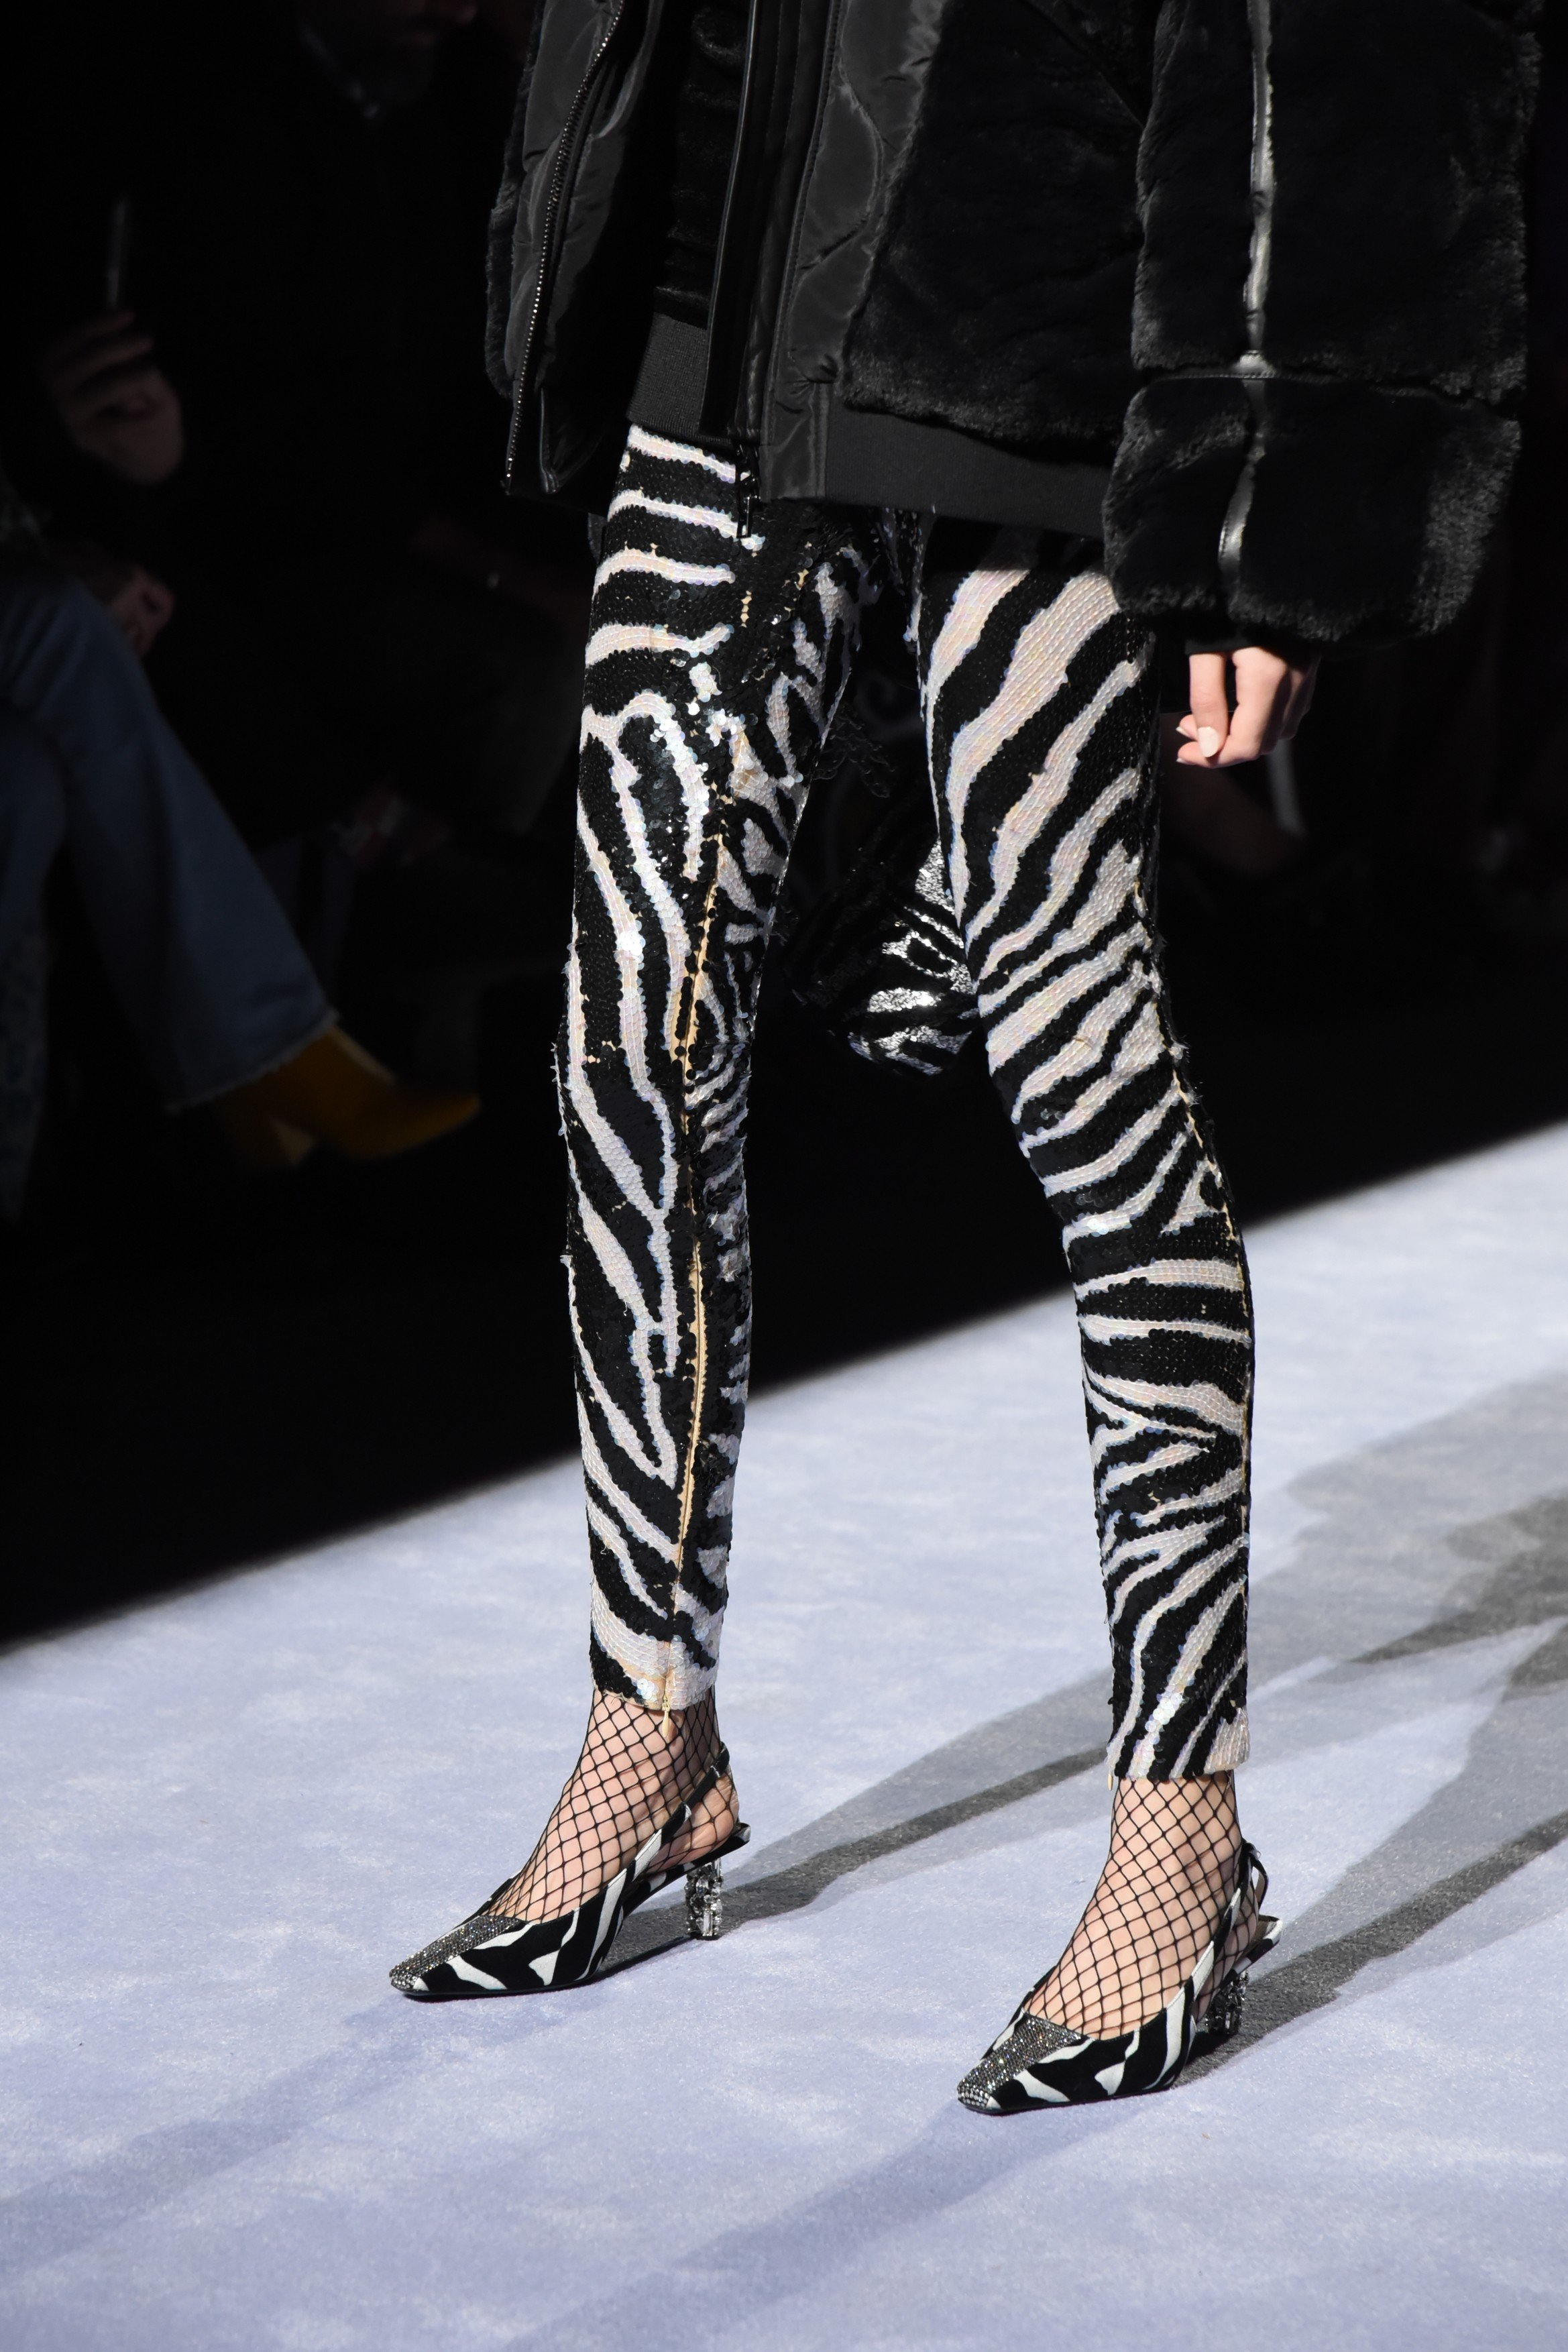 Model attends Tom Ford Womens - Runway Show FW18 on February 08, 2018 at Park Avenue Armory in New York, USA., Image: 362726335, License: Rights-managed, Restrictions: *** World Rights ***, Model Release: no, Credit line: Profimedia, SIPA USA